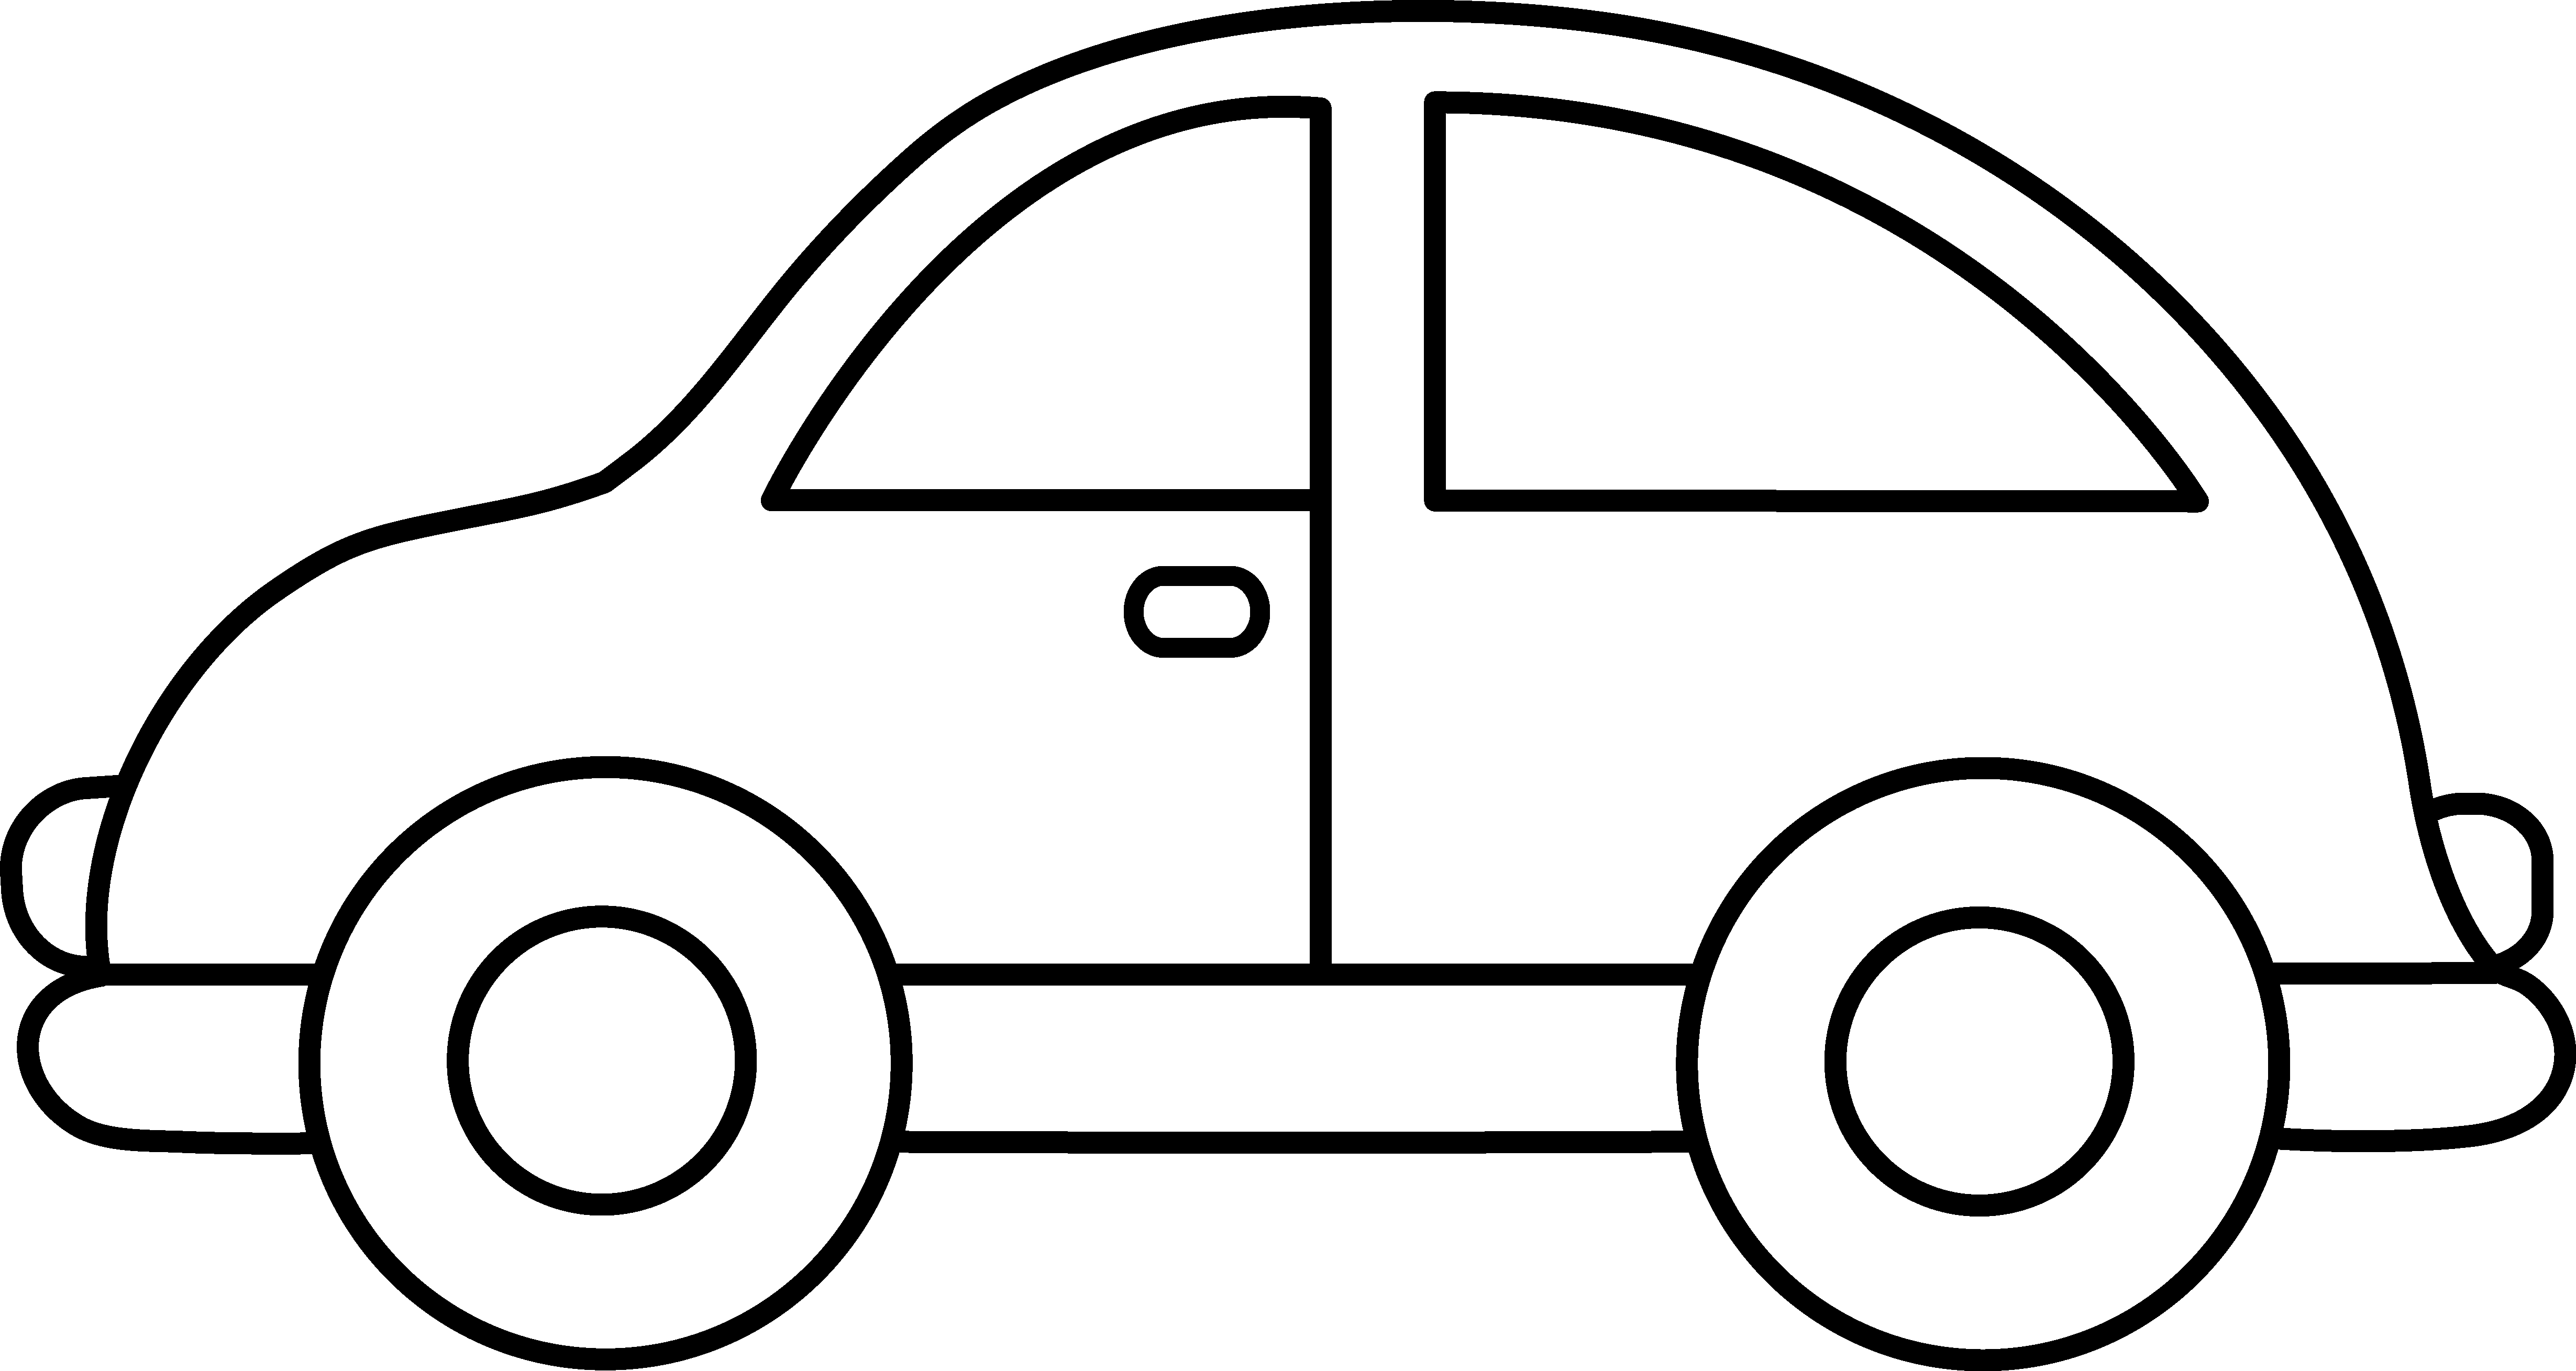 Car clipart images png free download Car Silhouette Clip Art at GetDrawings.com | Free for personal use ... png free download